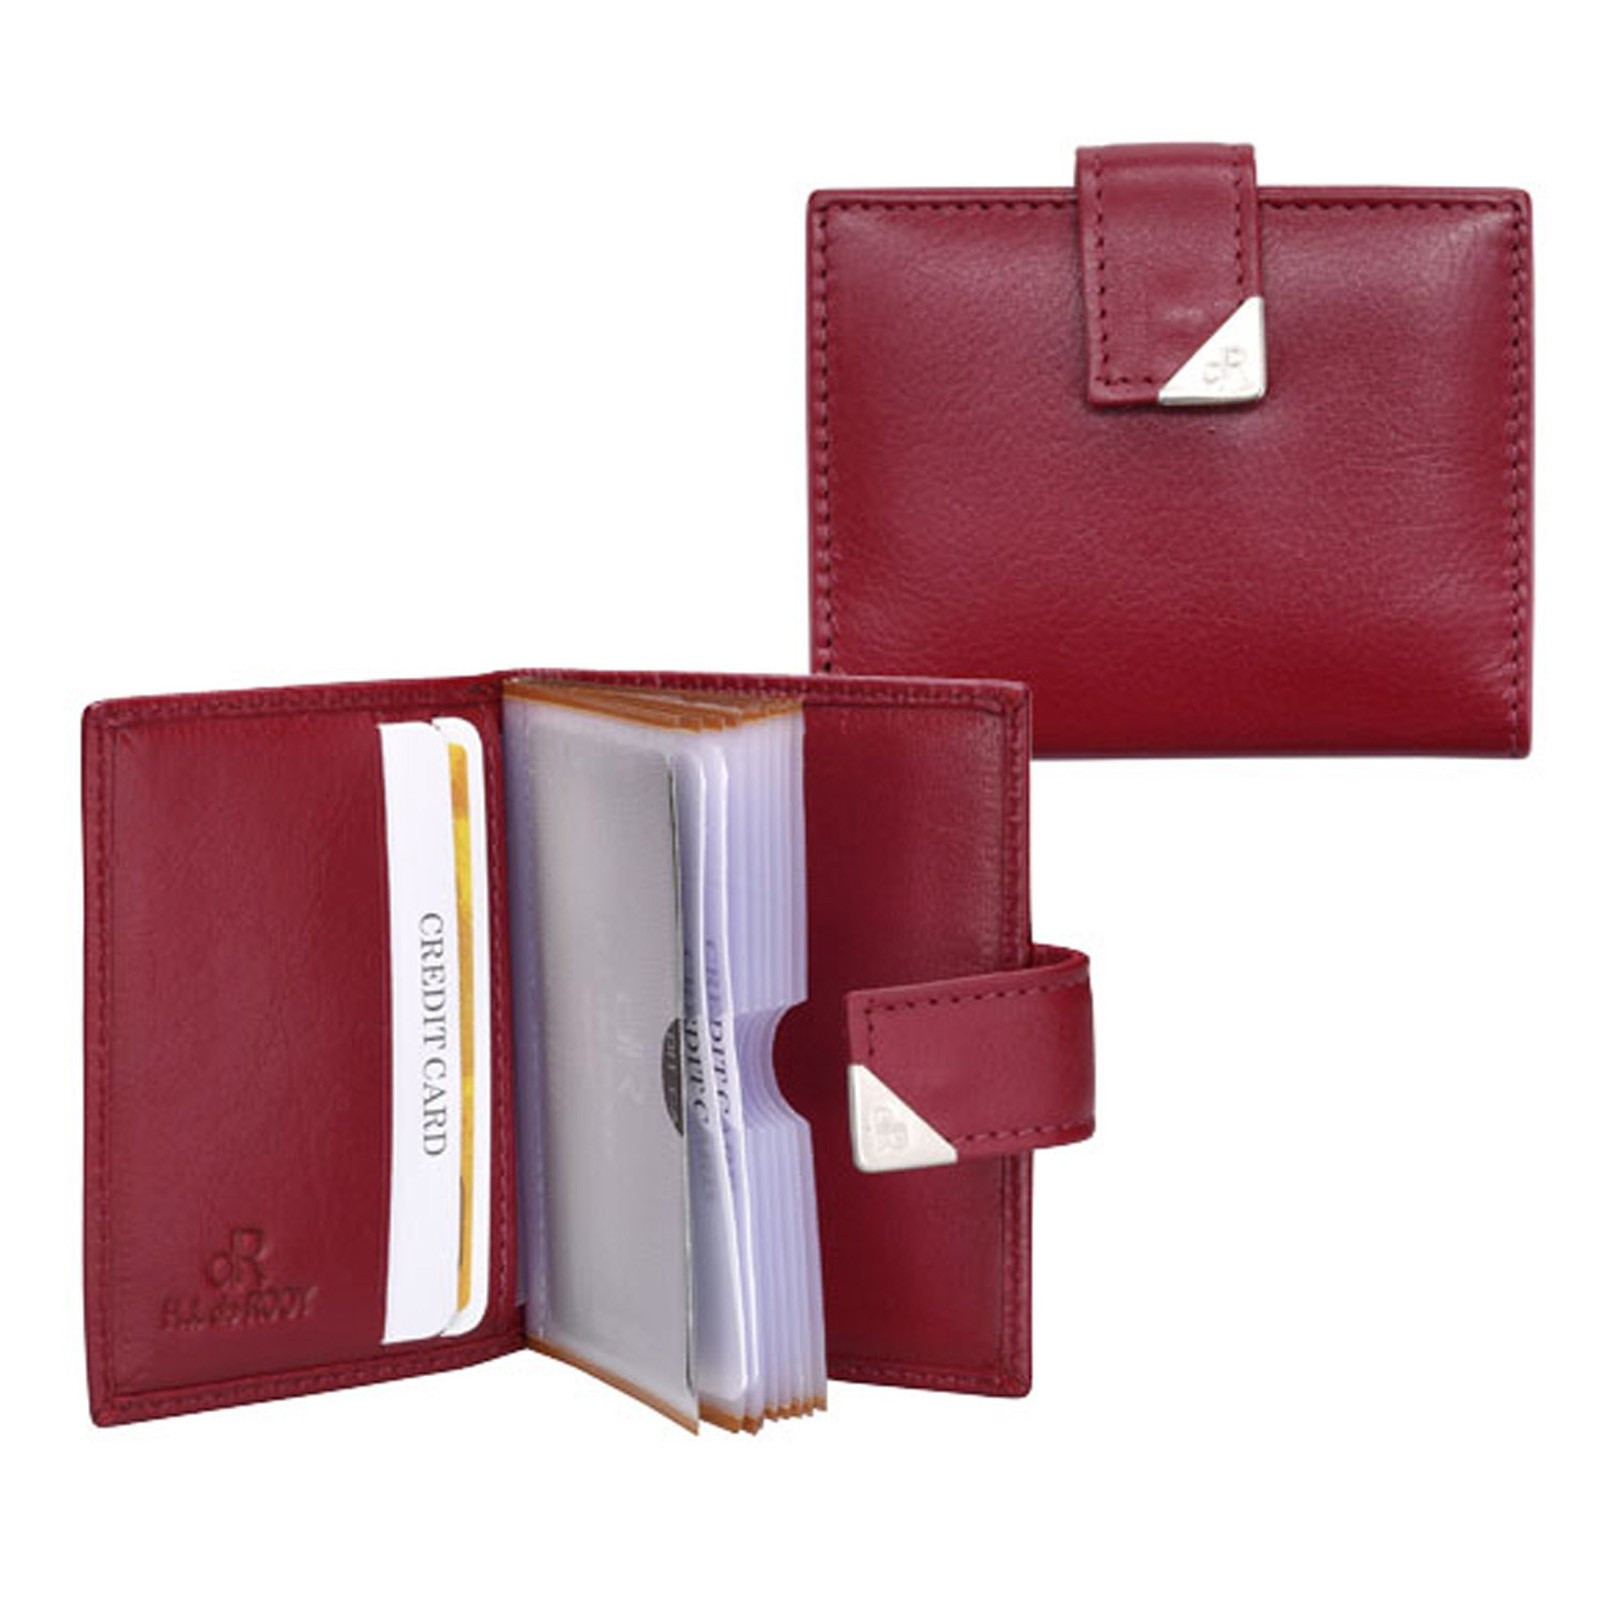 dR Amsterdam Creditcard-etui 15692 Red